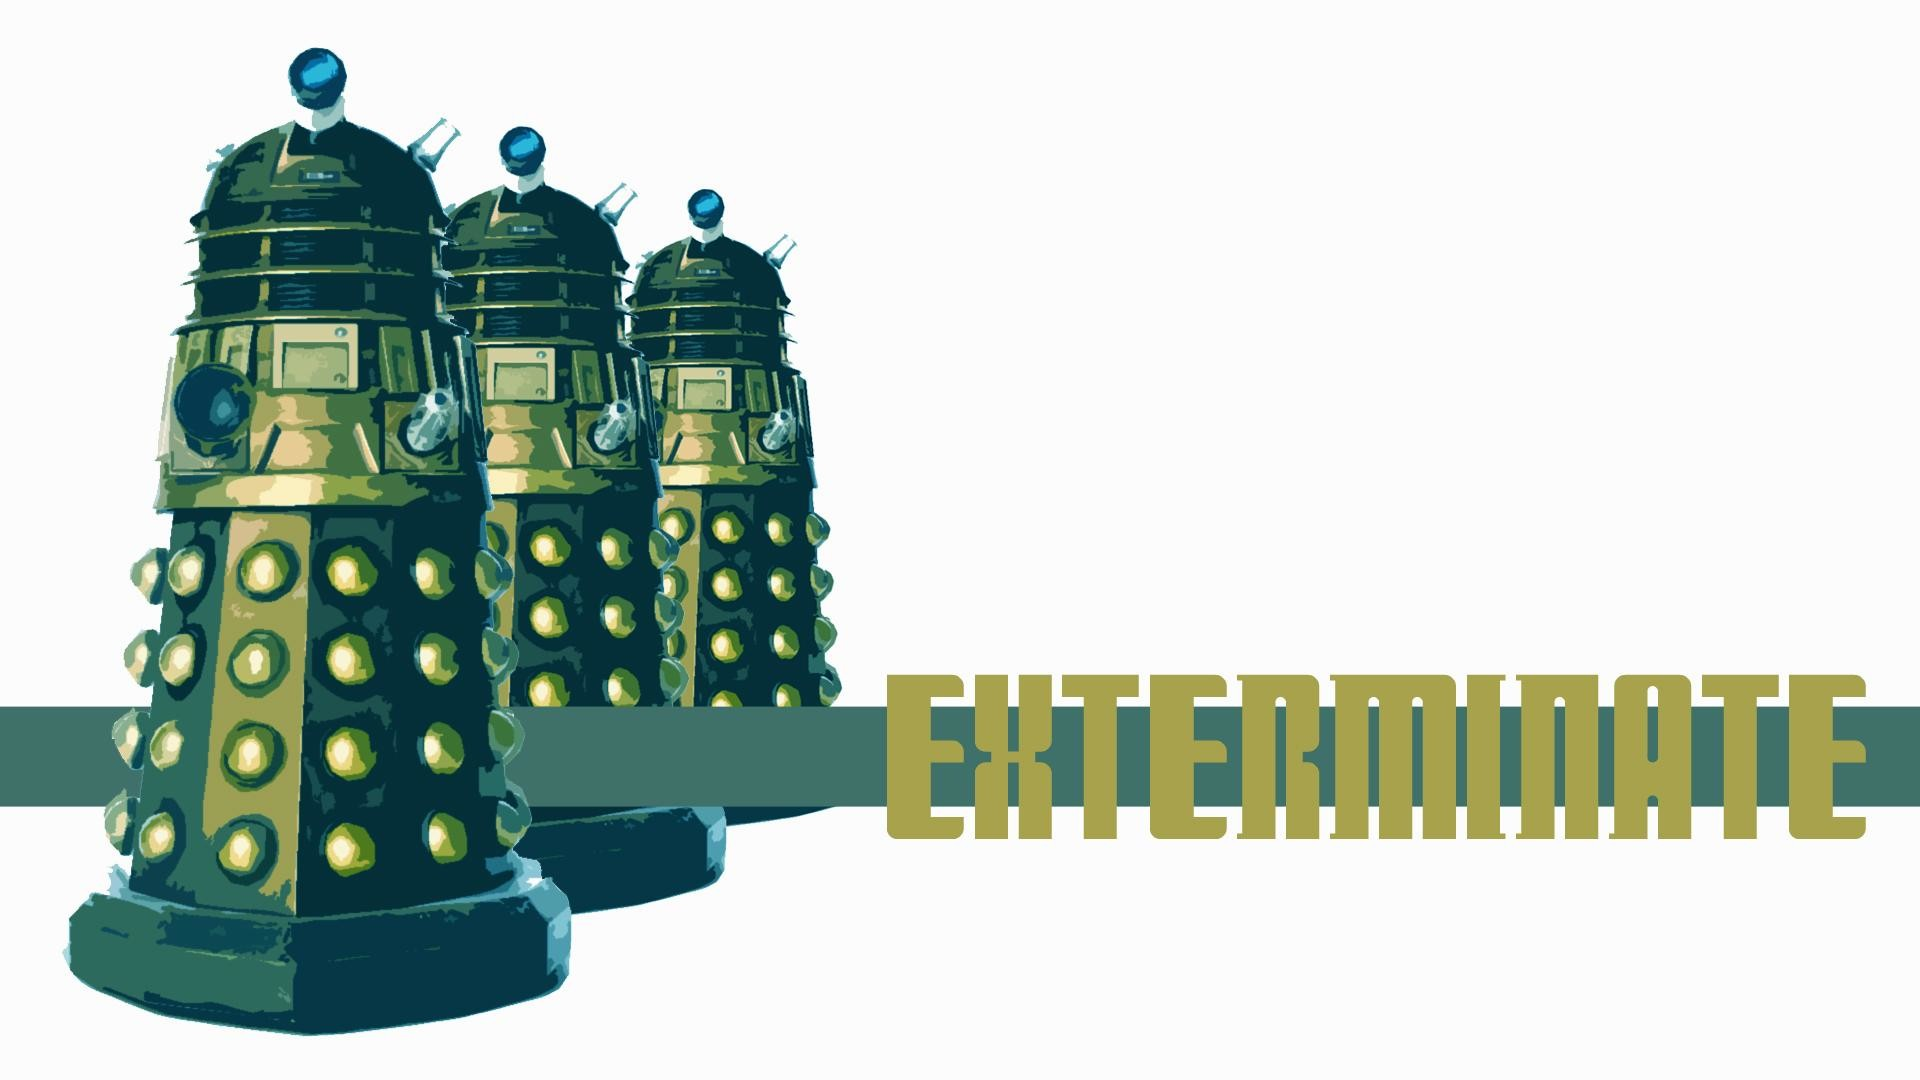 doctor-who-1920%C3%971080-wallpaper-wp2001305